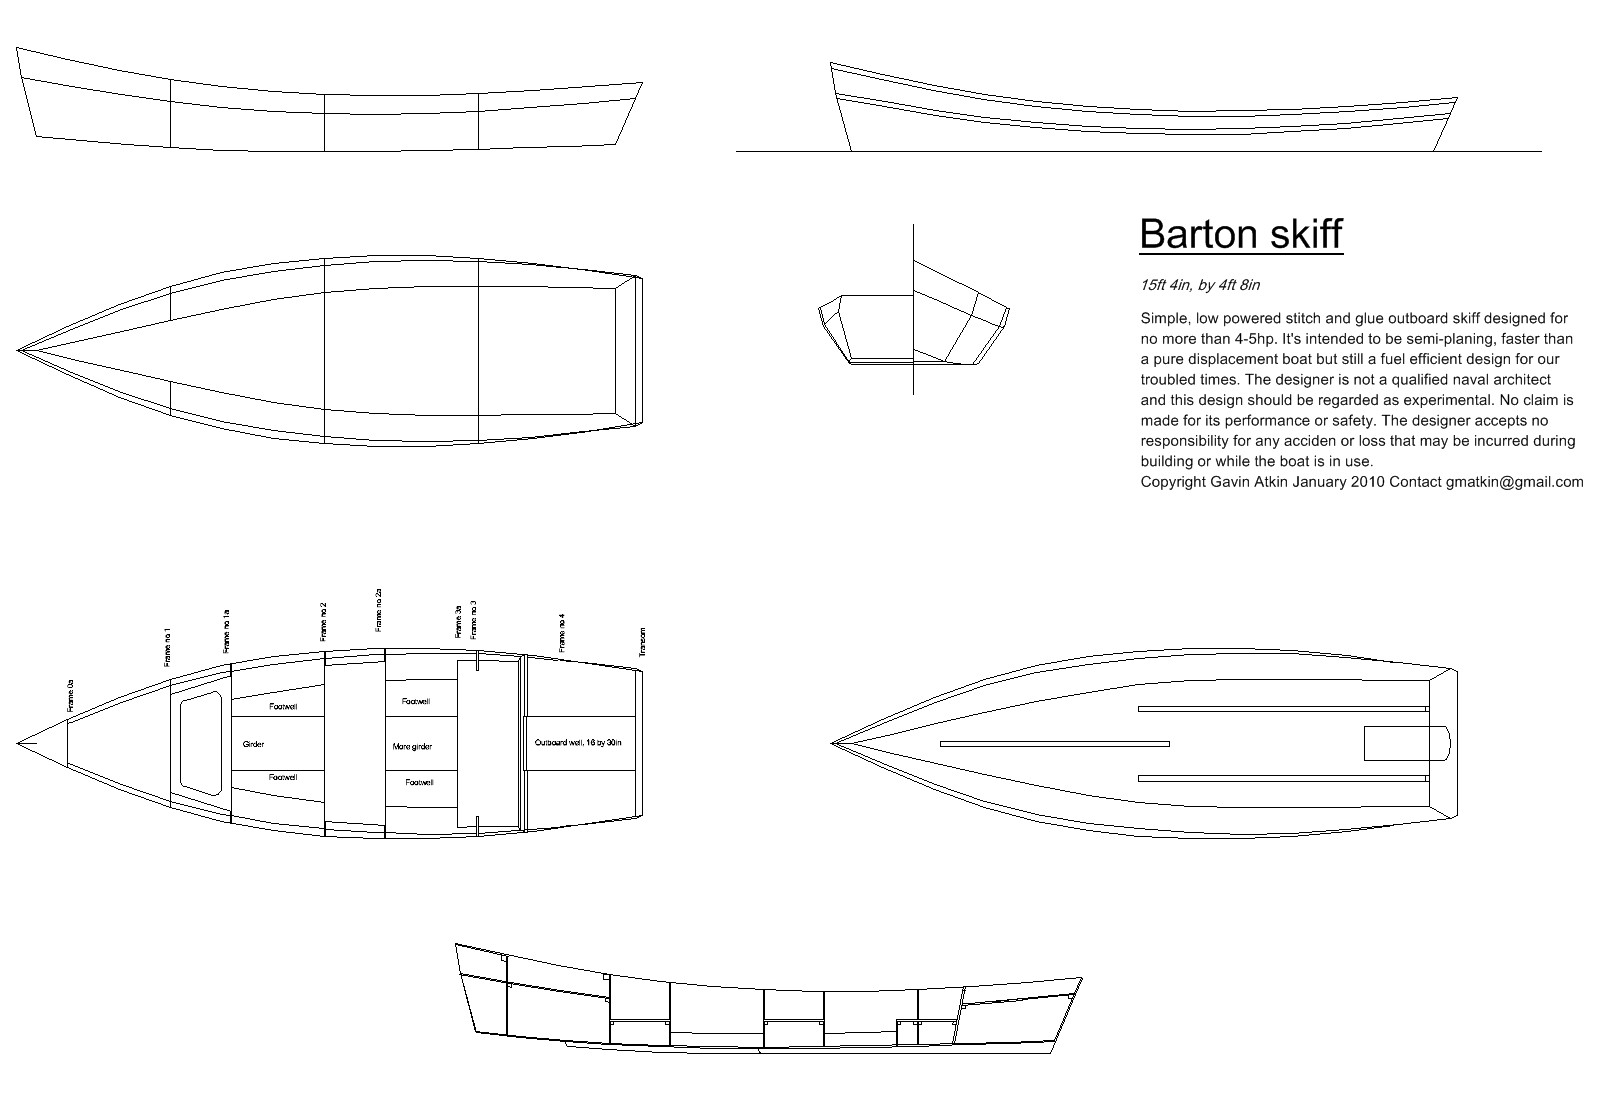 At Last Construction Drawings For The Barton Skiff